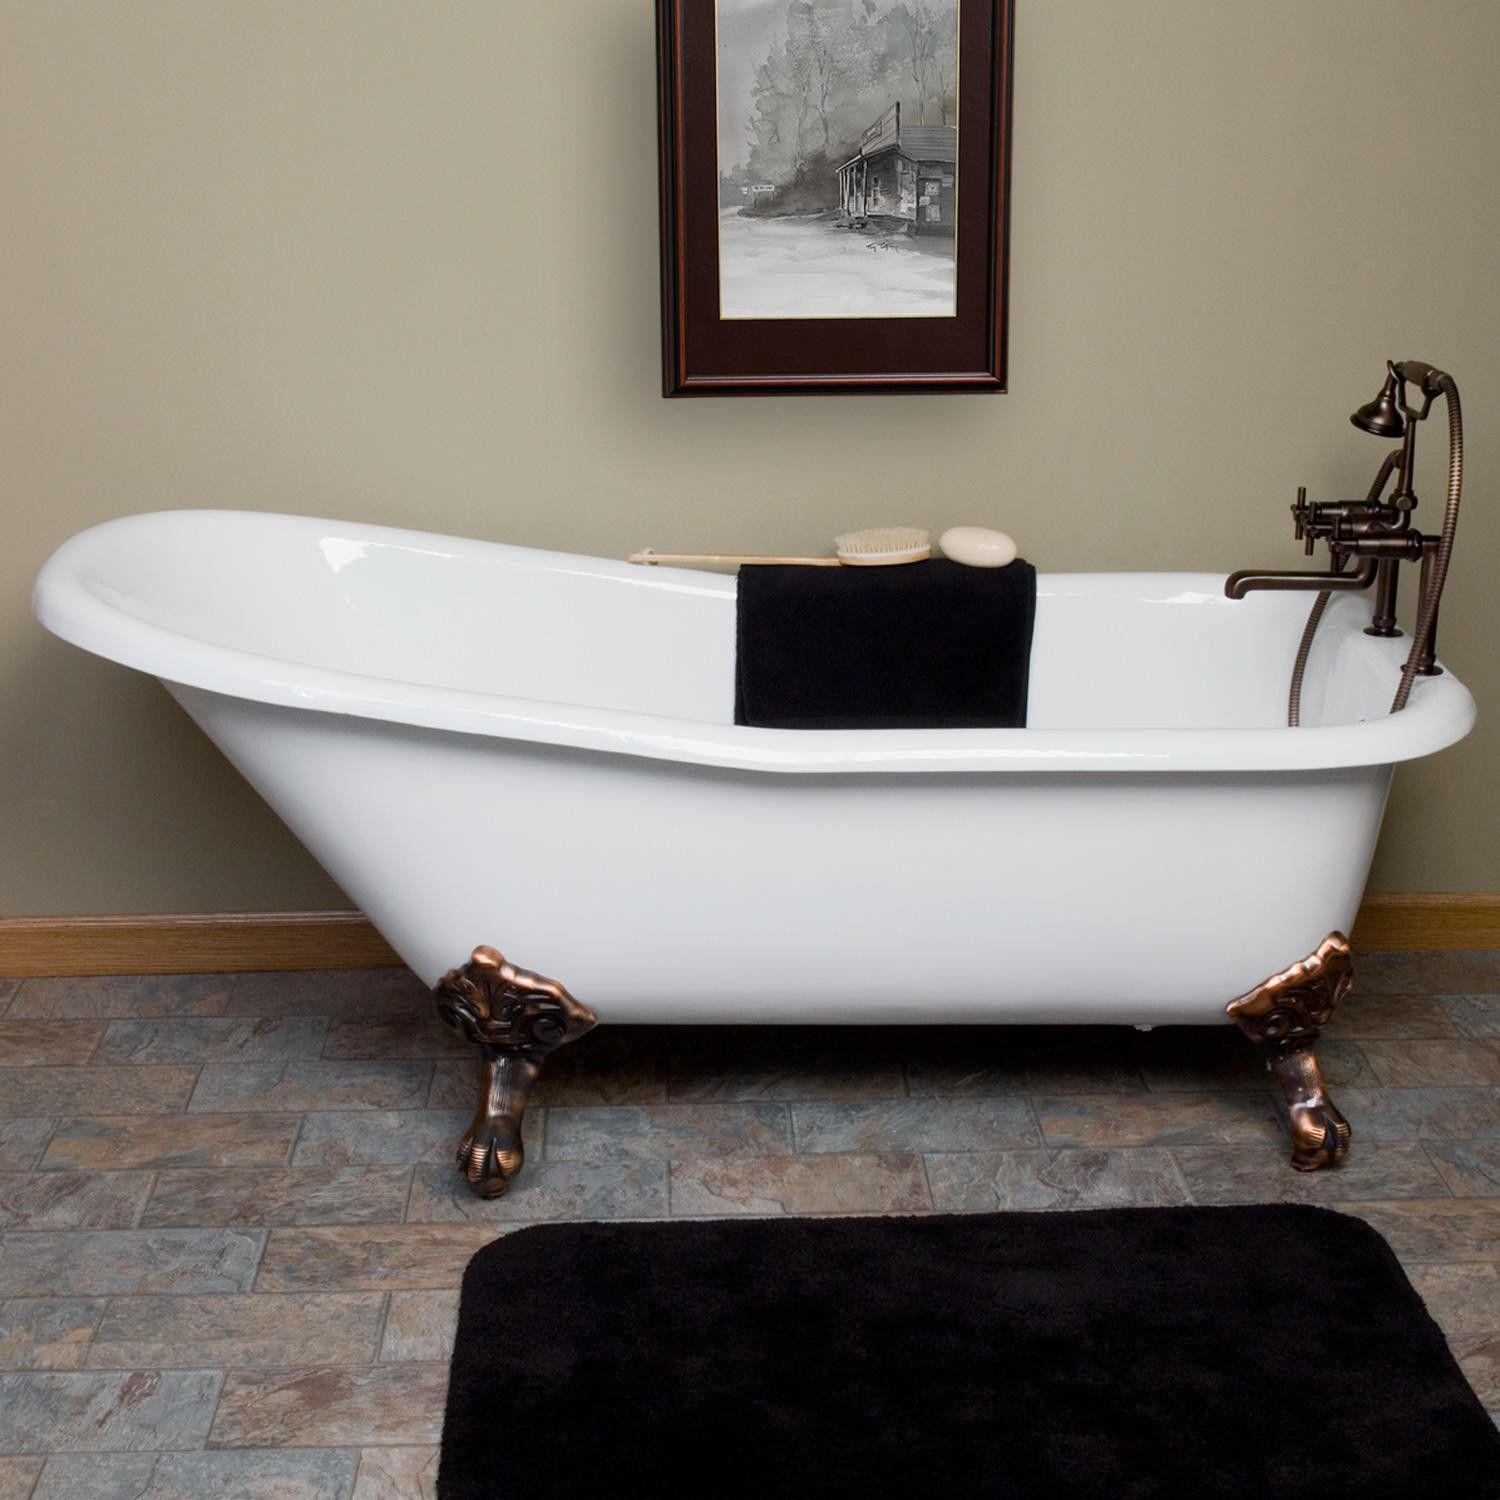 menards drains sale domed at bathtub panels for tub showers bathtubs idea claw astonishing jacuzzi surround shower tubs